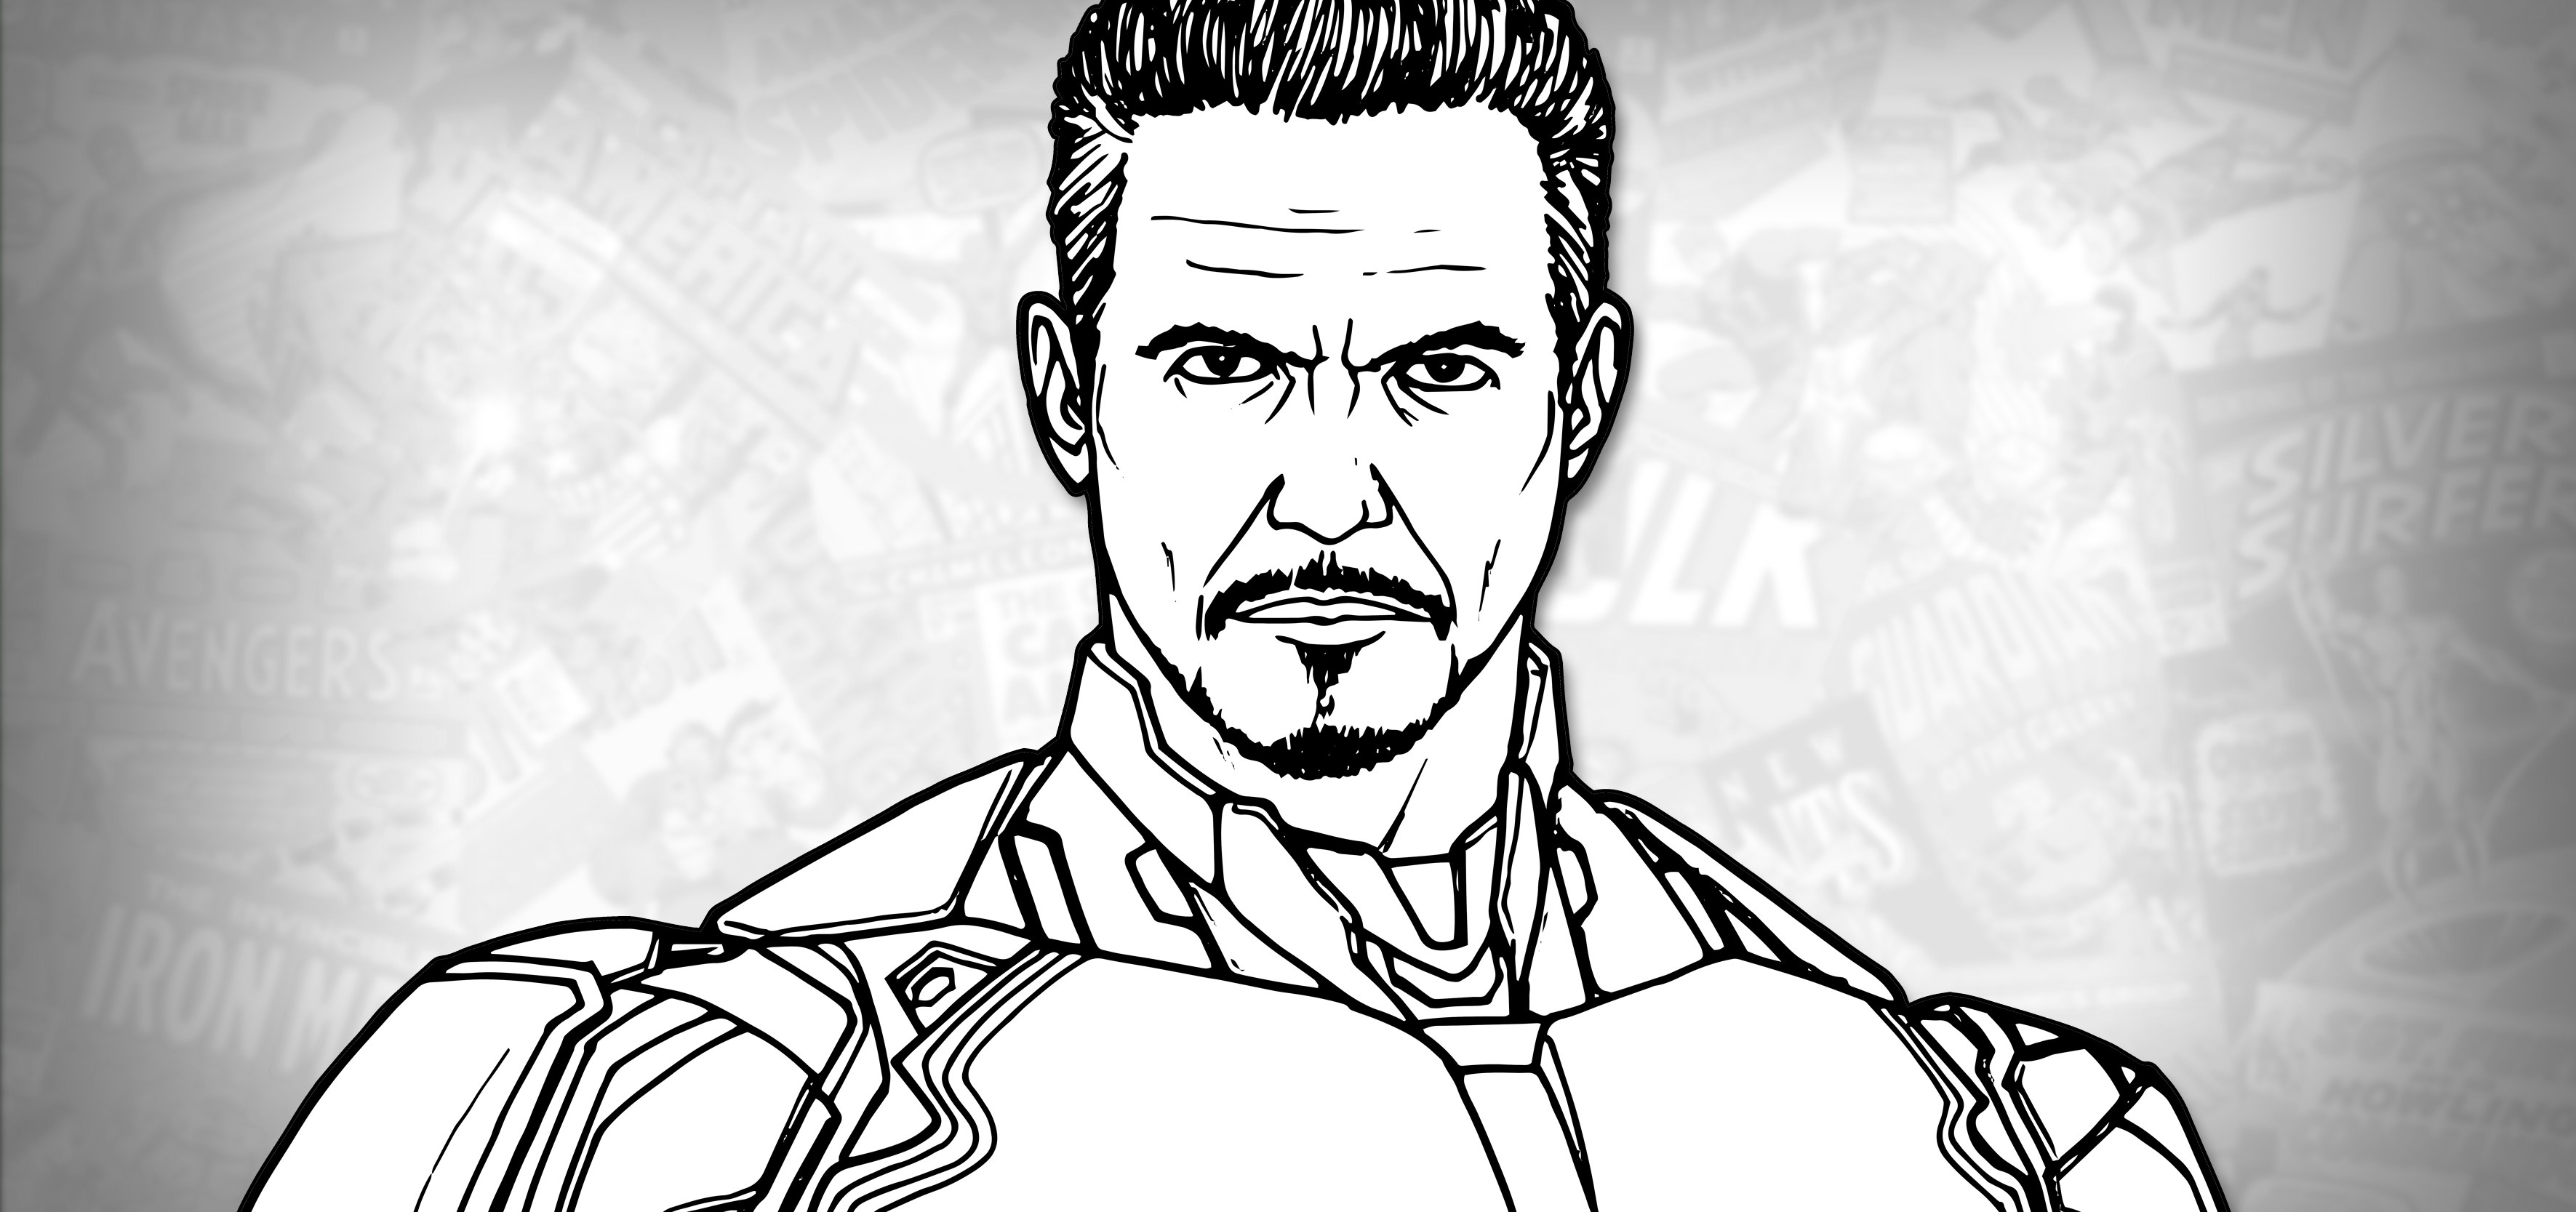 how to draw iron man face how to draw iron man avengers endgame drawing tutorial man iron face draw how to